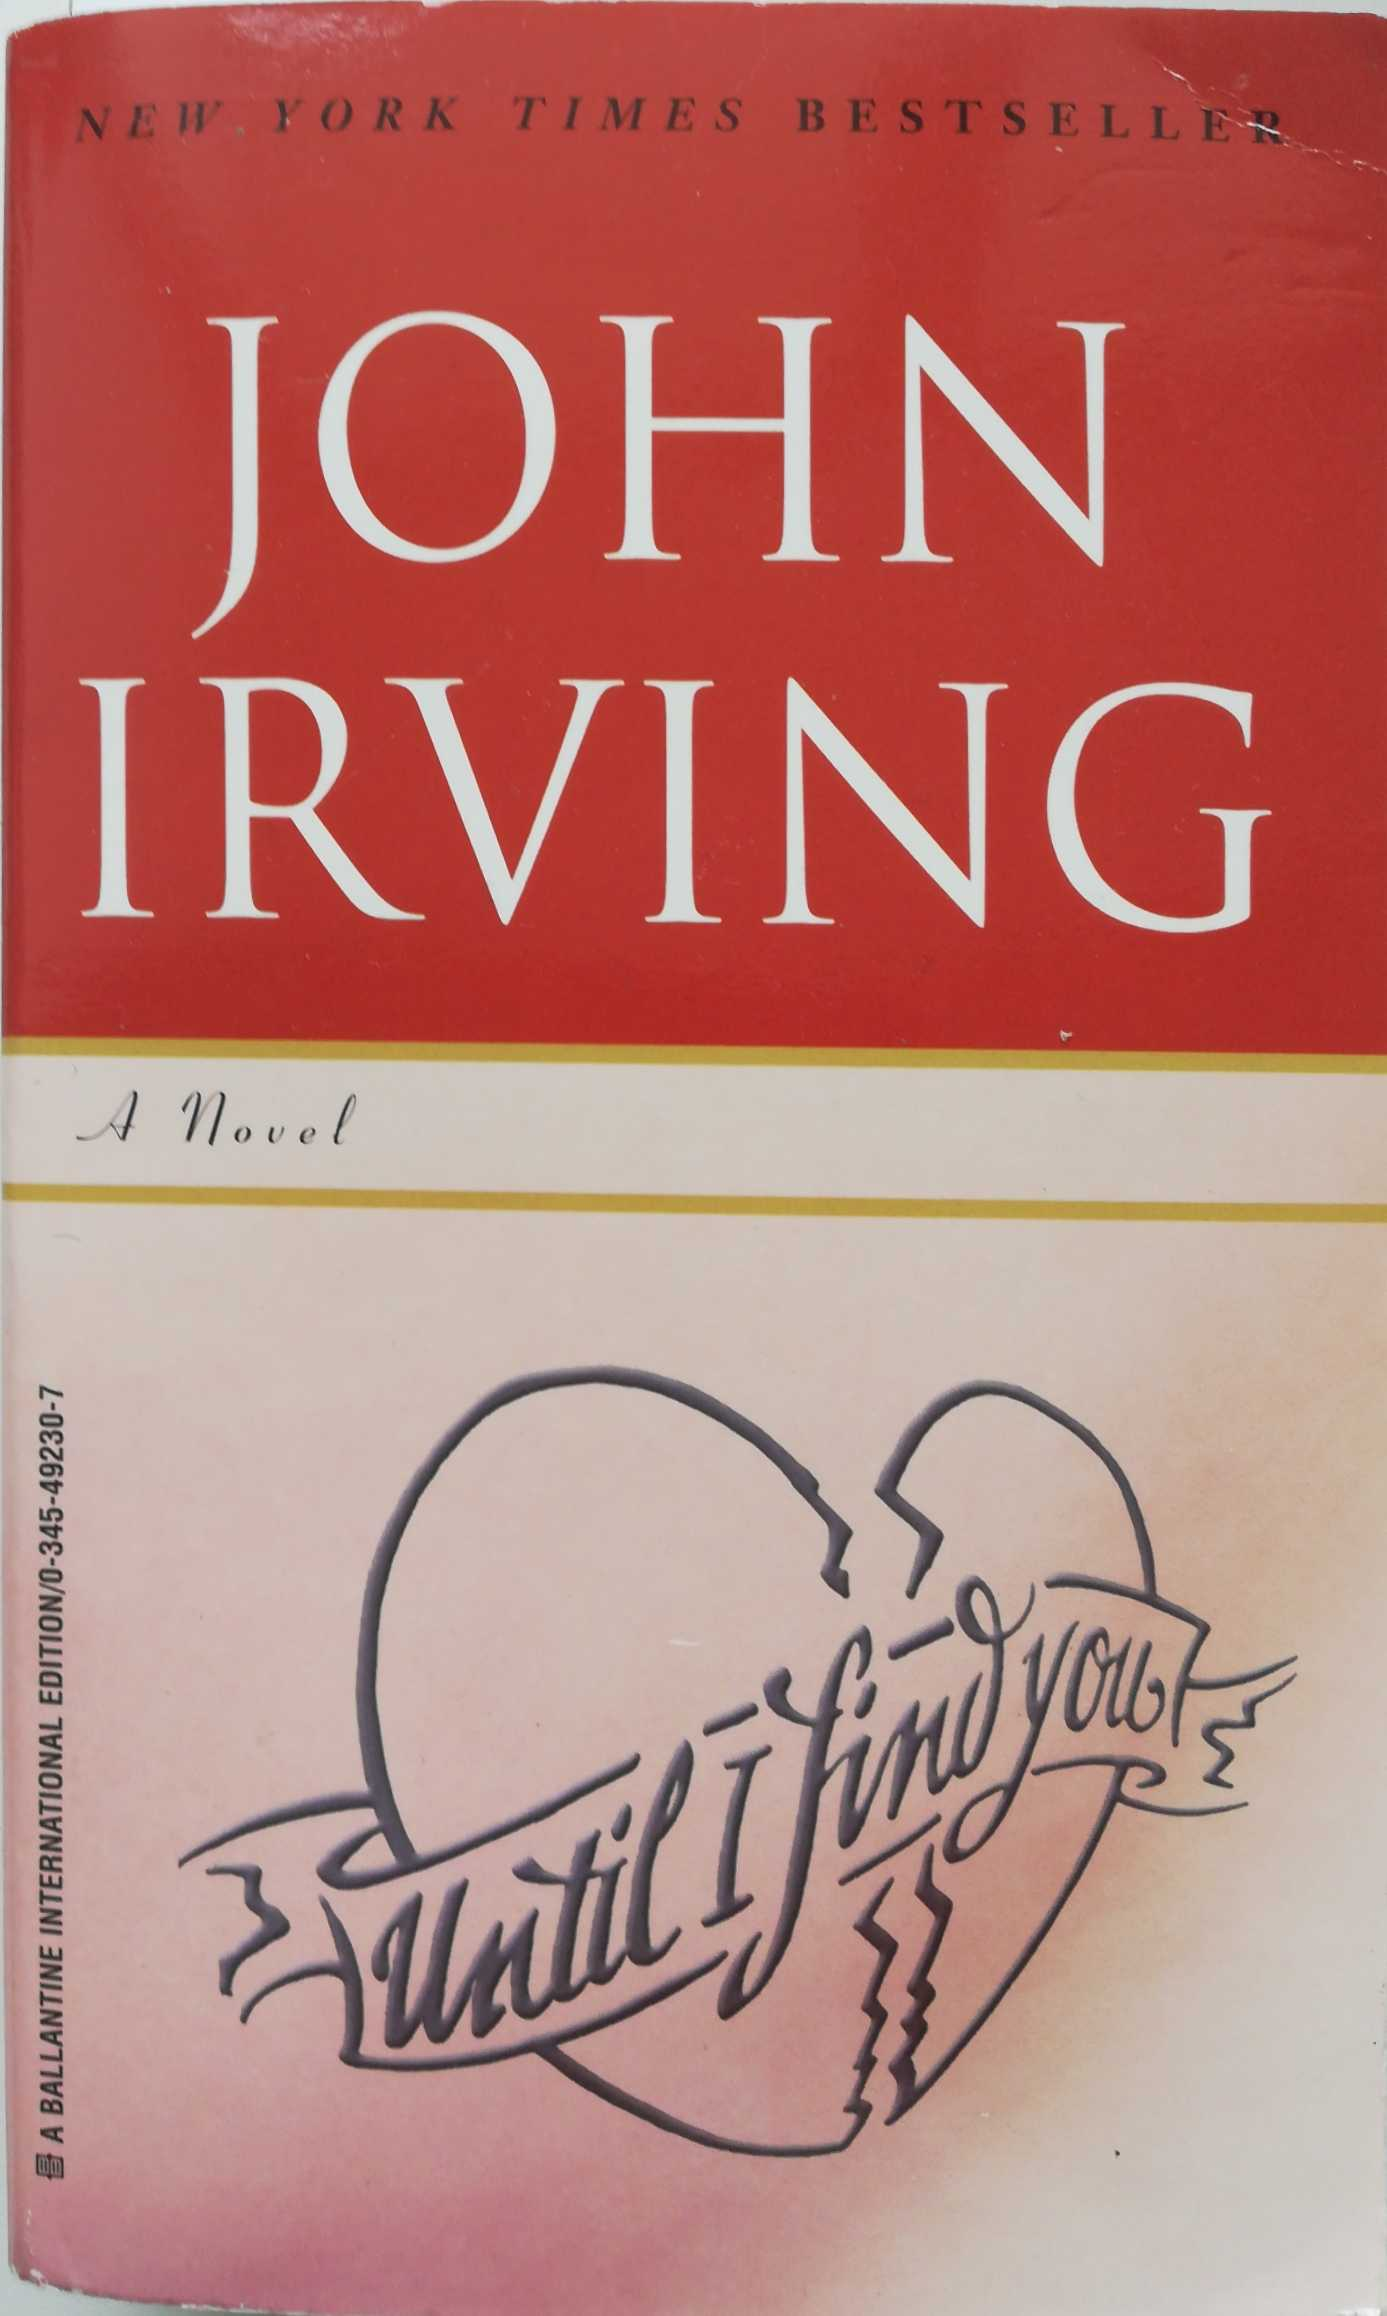 Irving John. Until I Find You